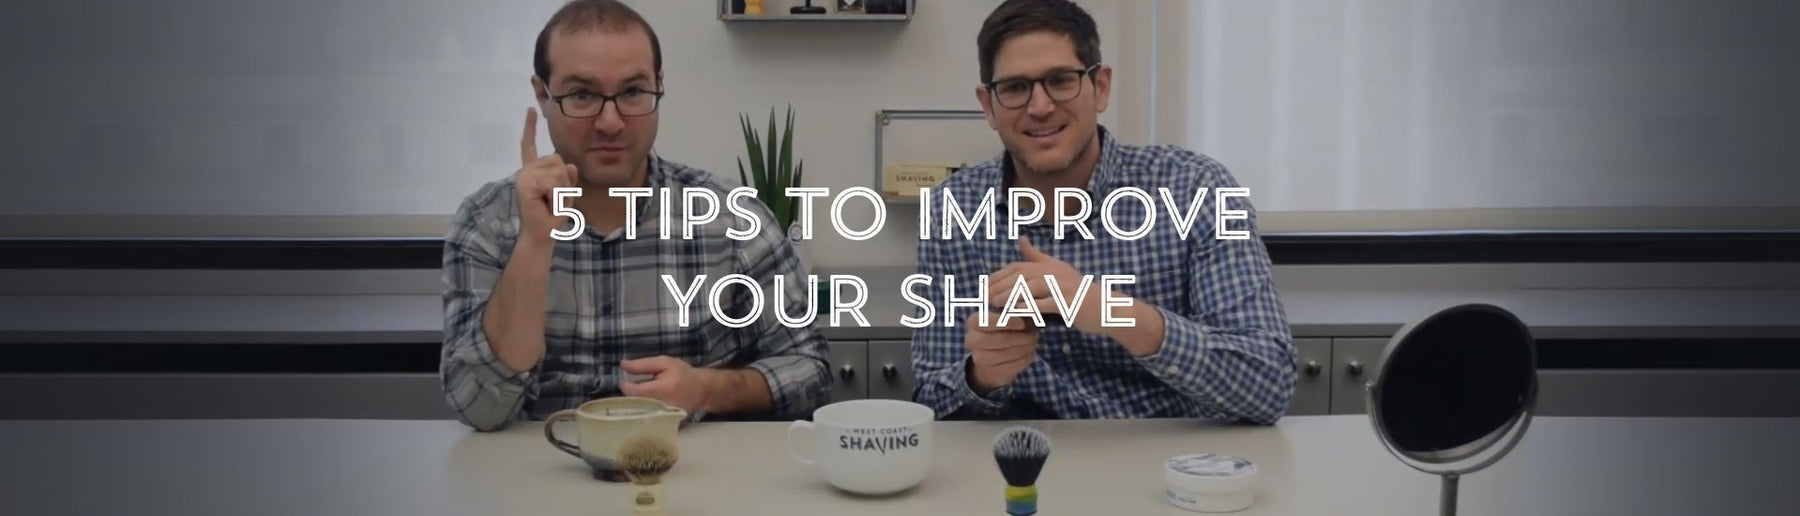 5 Tips to Improve Your Shave-West Coast Shaving